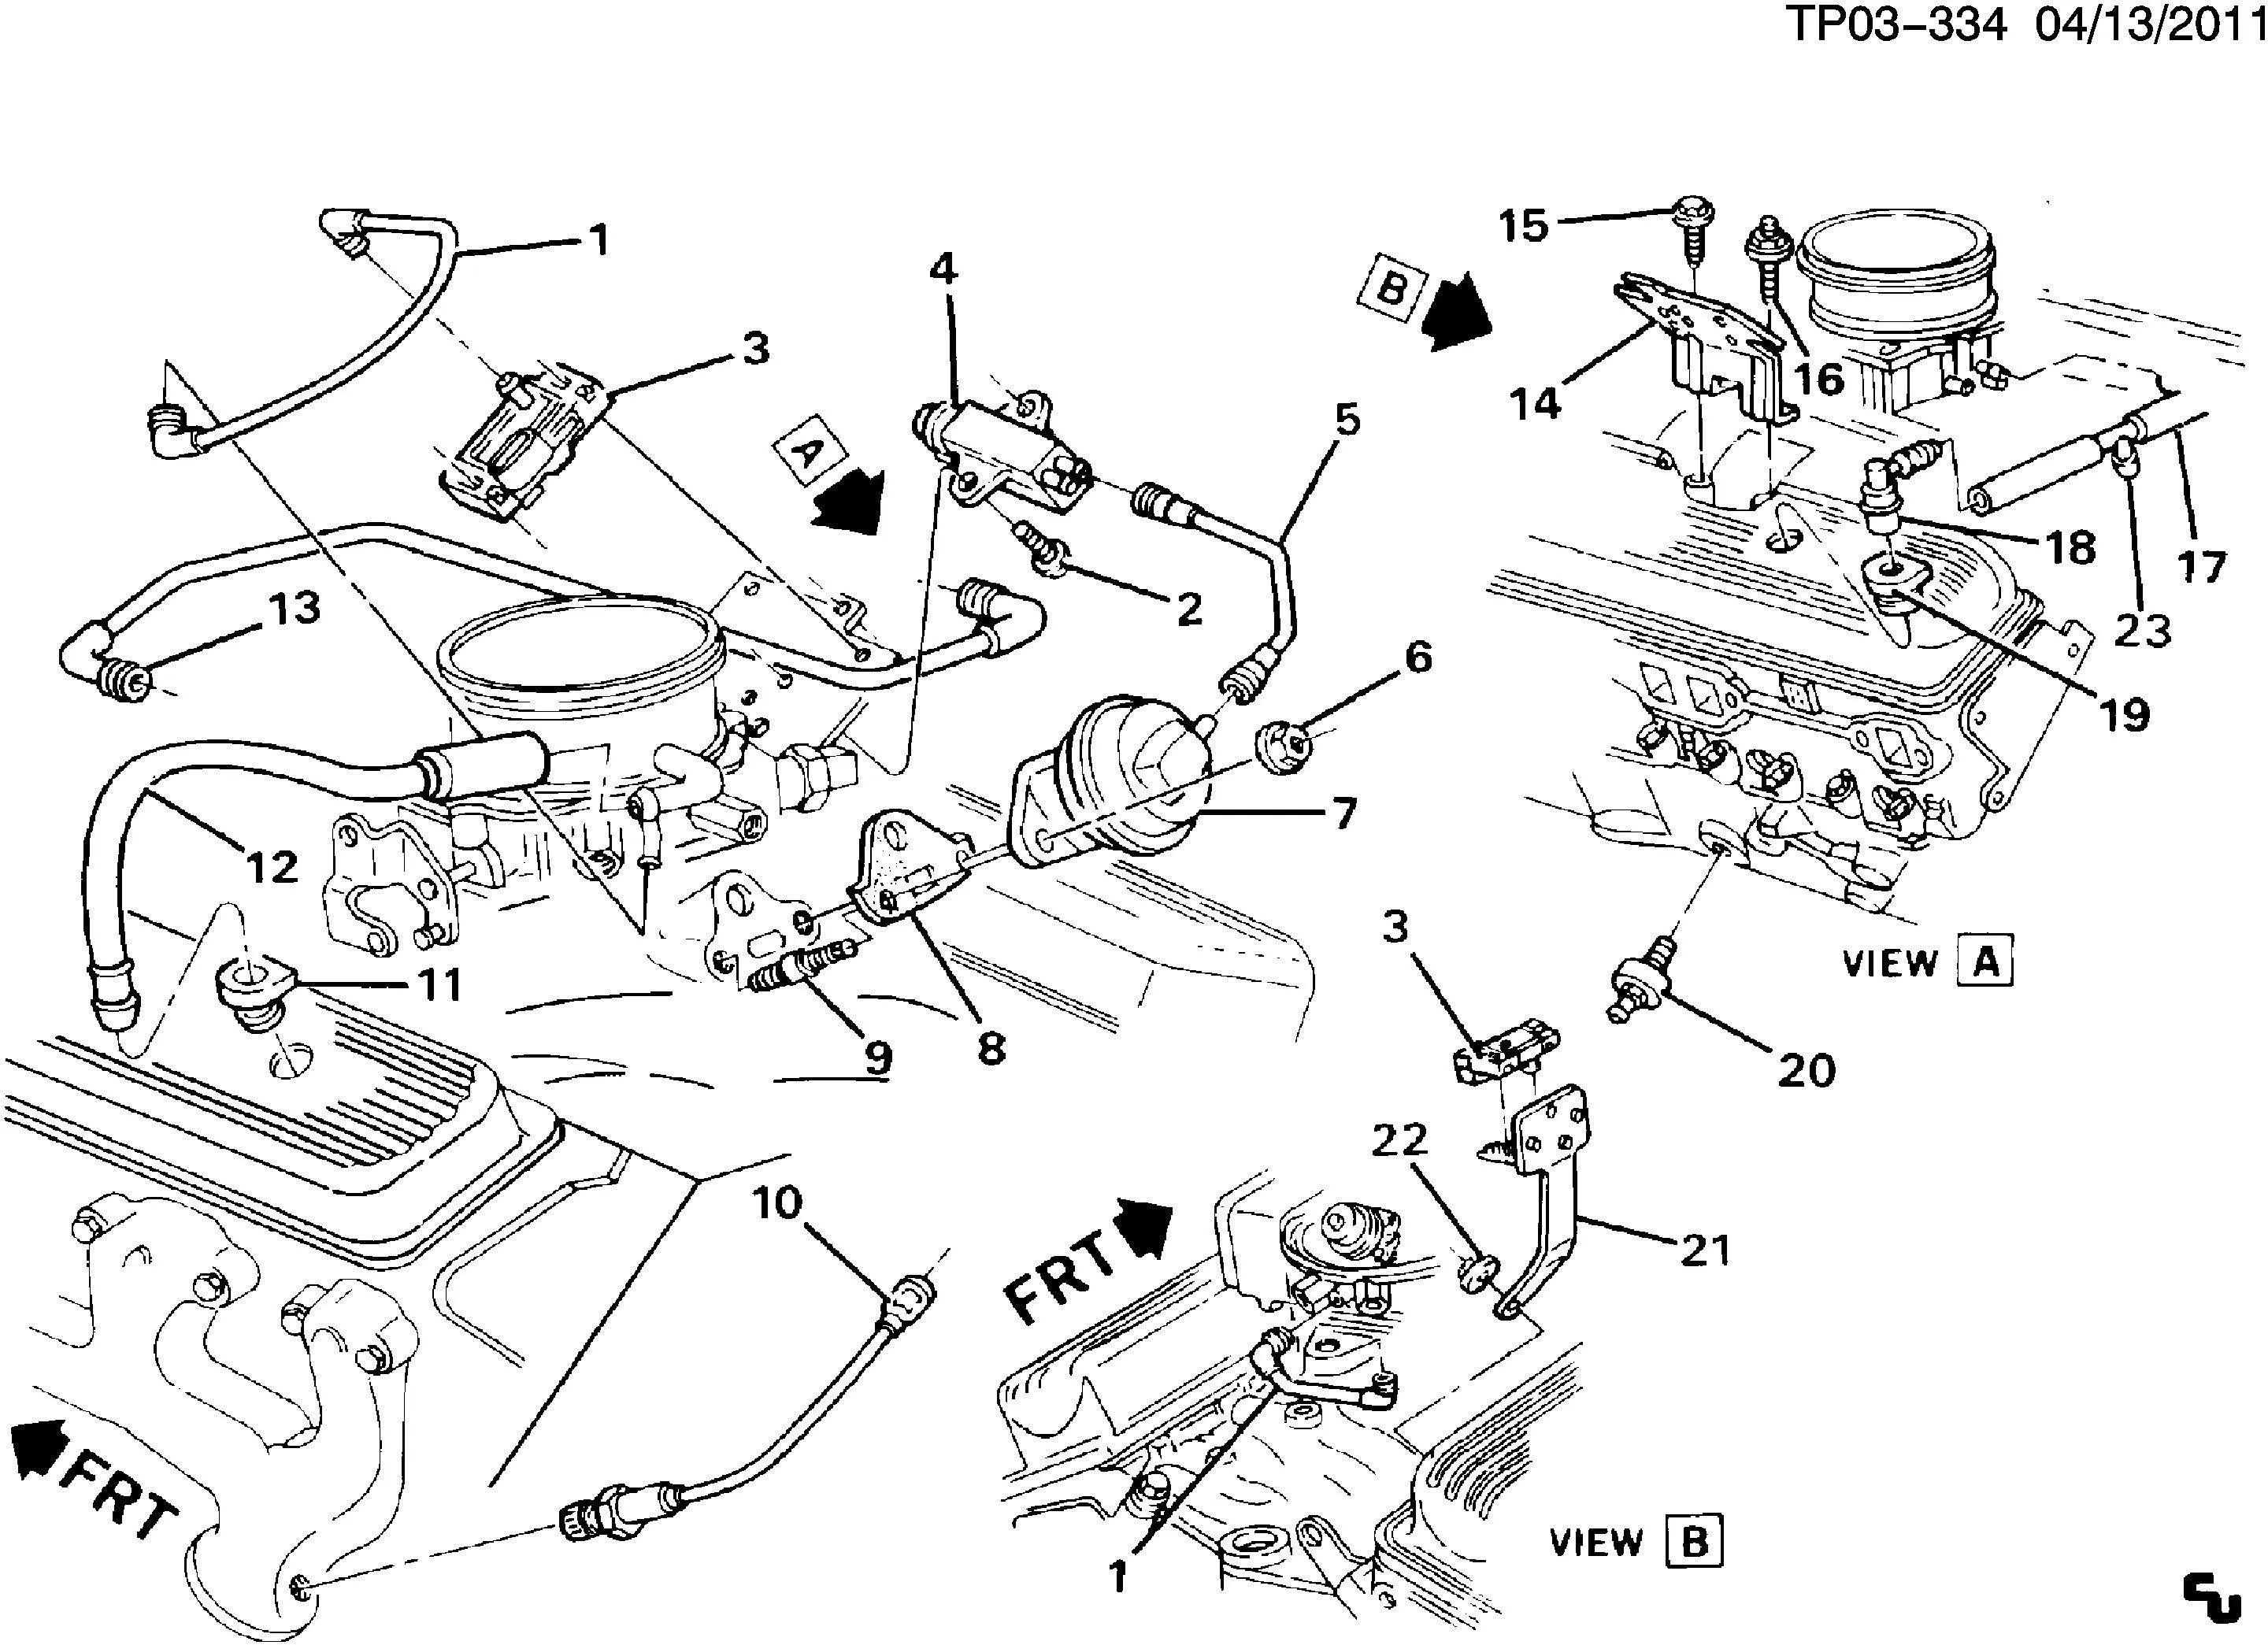 Chevy 7 4l Engine Diagram | Wiring DiagramWiring Diagram - Autoscout24